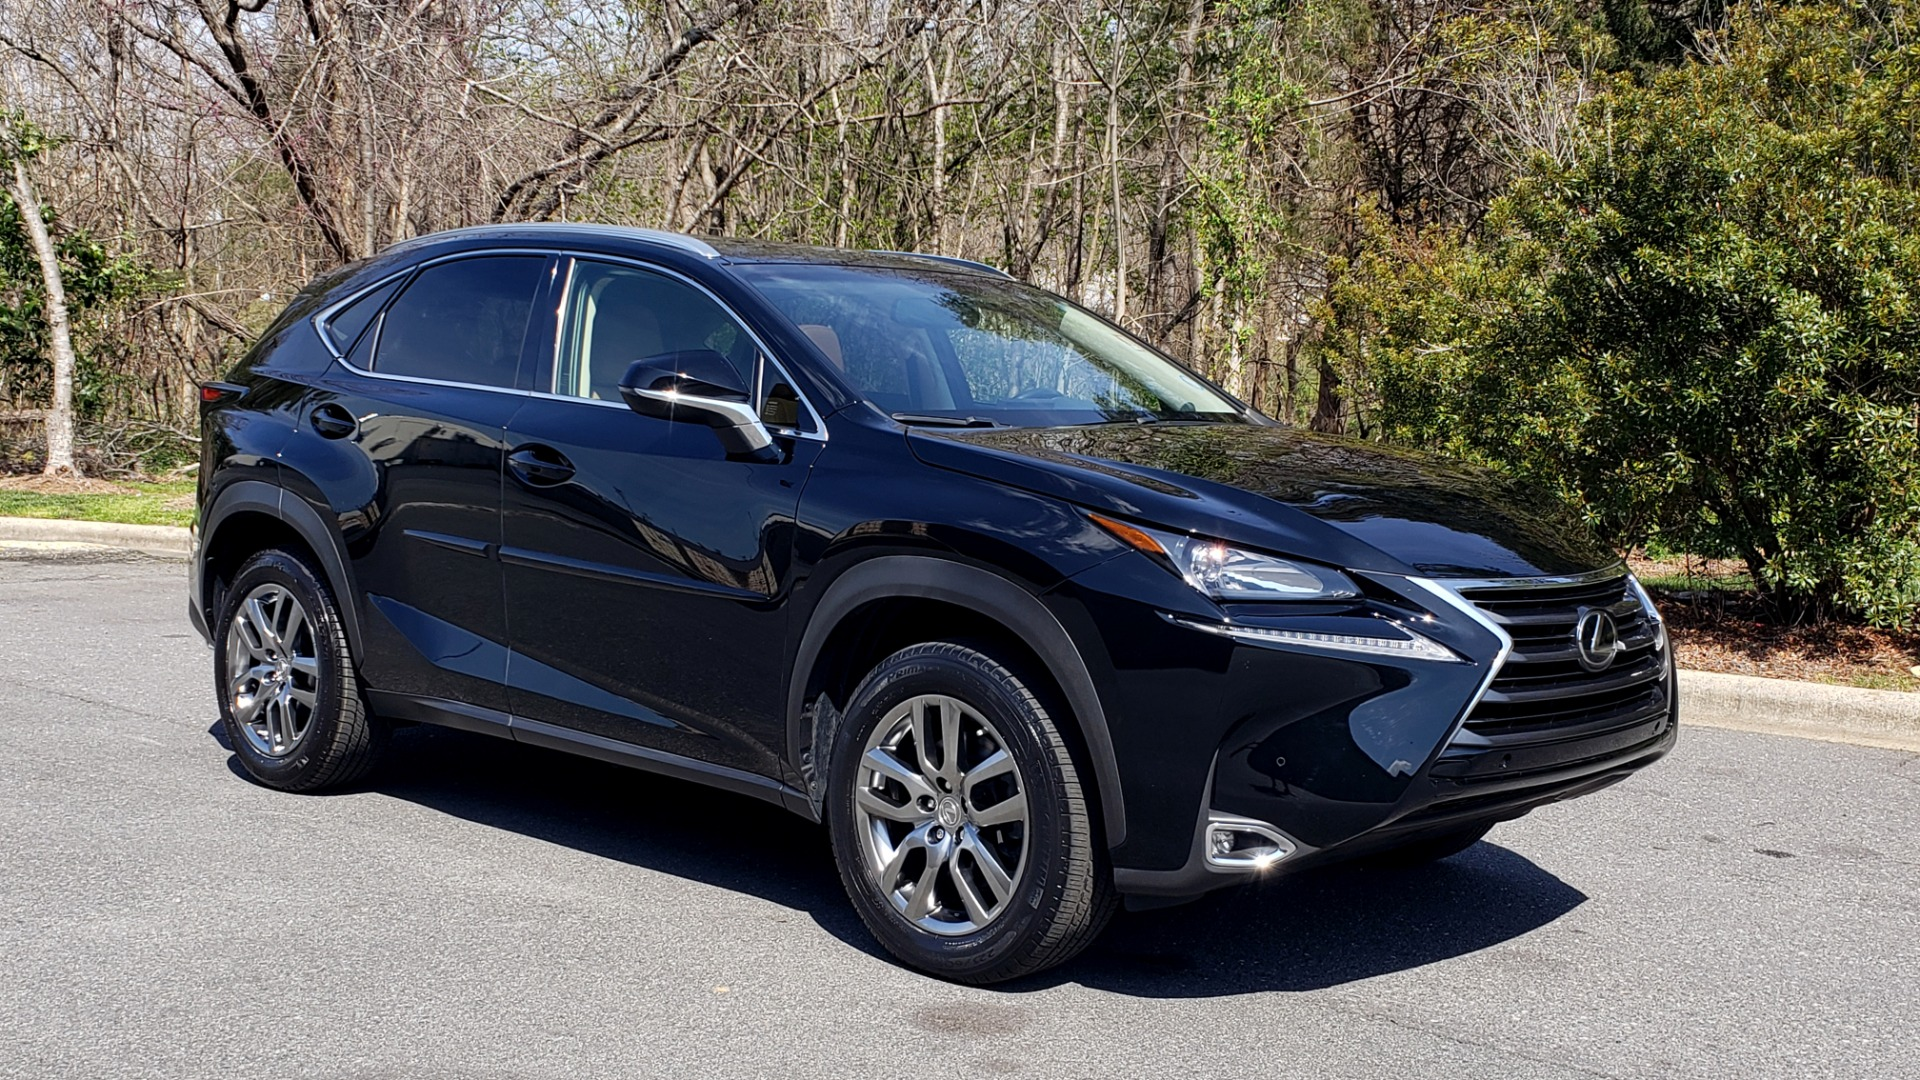 Used 2016 Lexus NX 200T PREM PKG / NAV / SUNROOF / PRE-COLLISION / PARK ASST for sale Sold at Formula Imports in Charlotte NC 28227 4